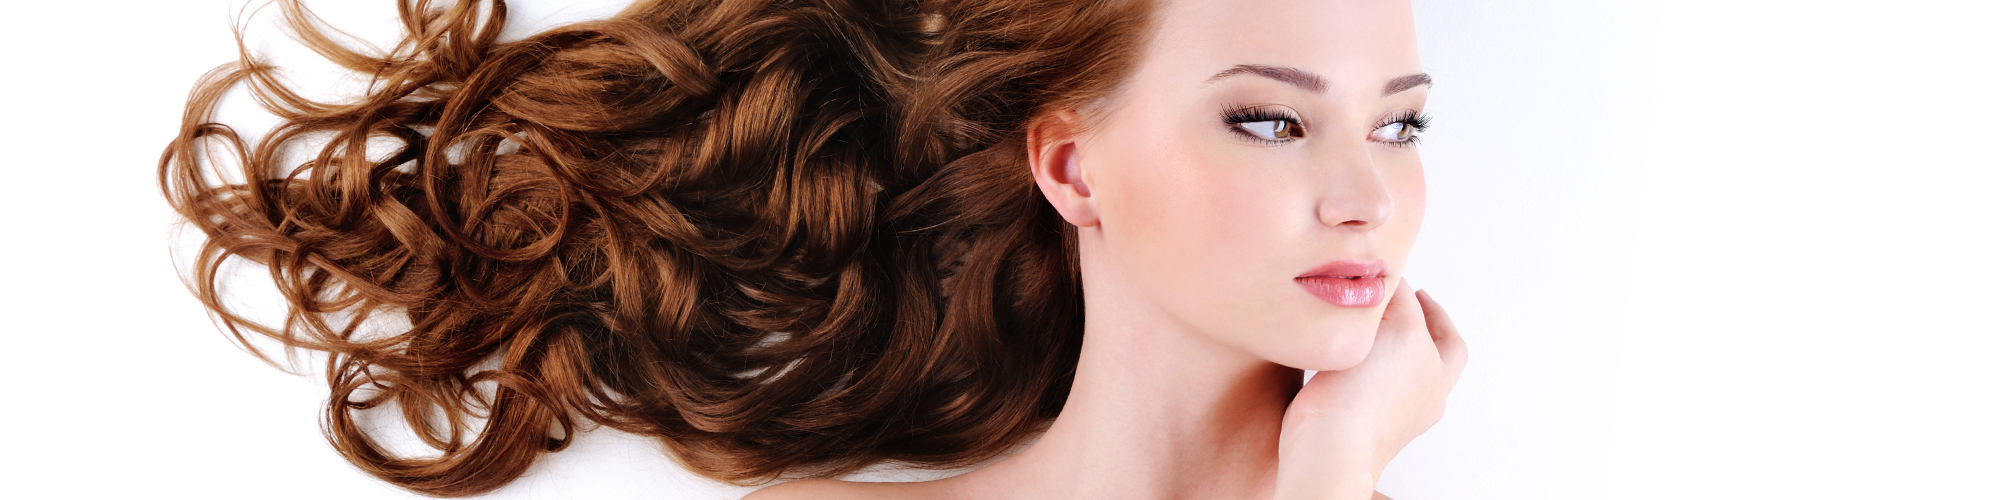 Hair Services Hair Extensions Bloomfield Nj